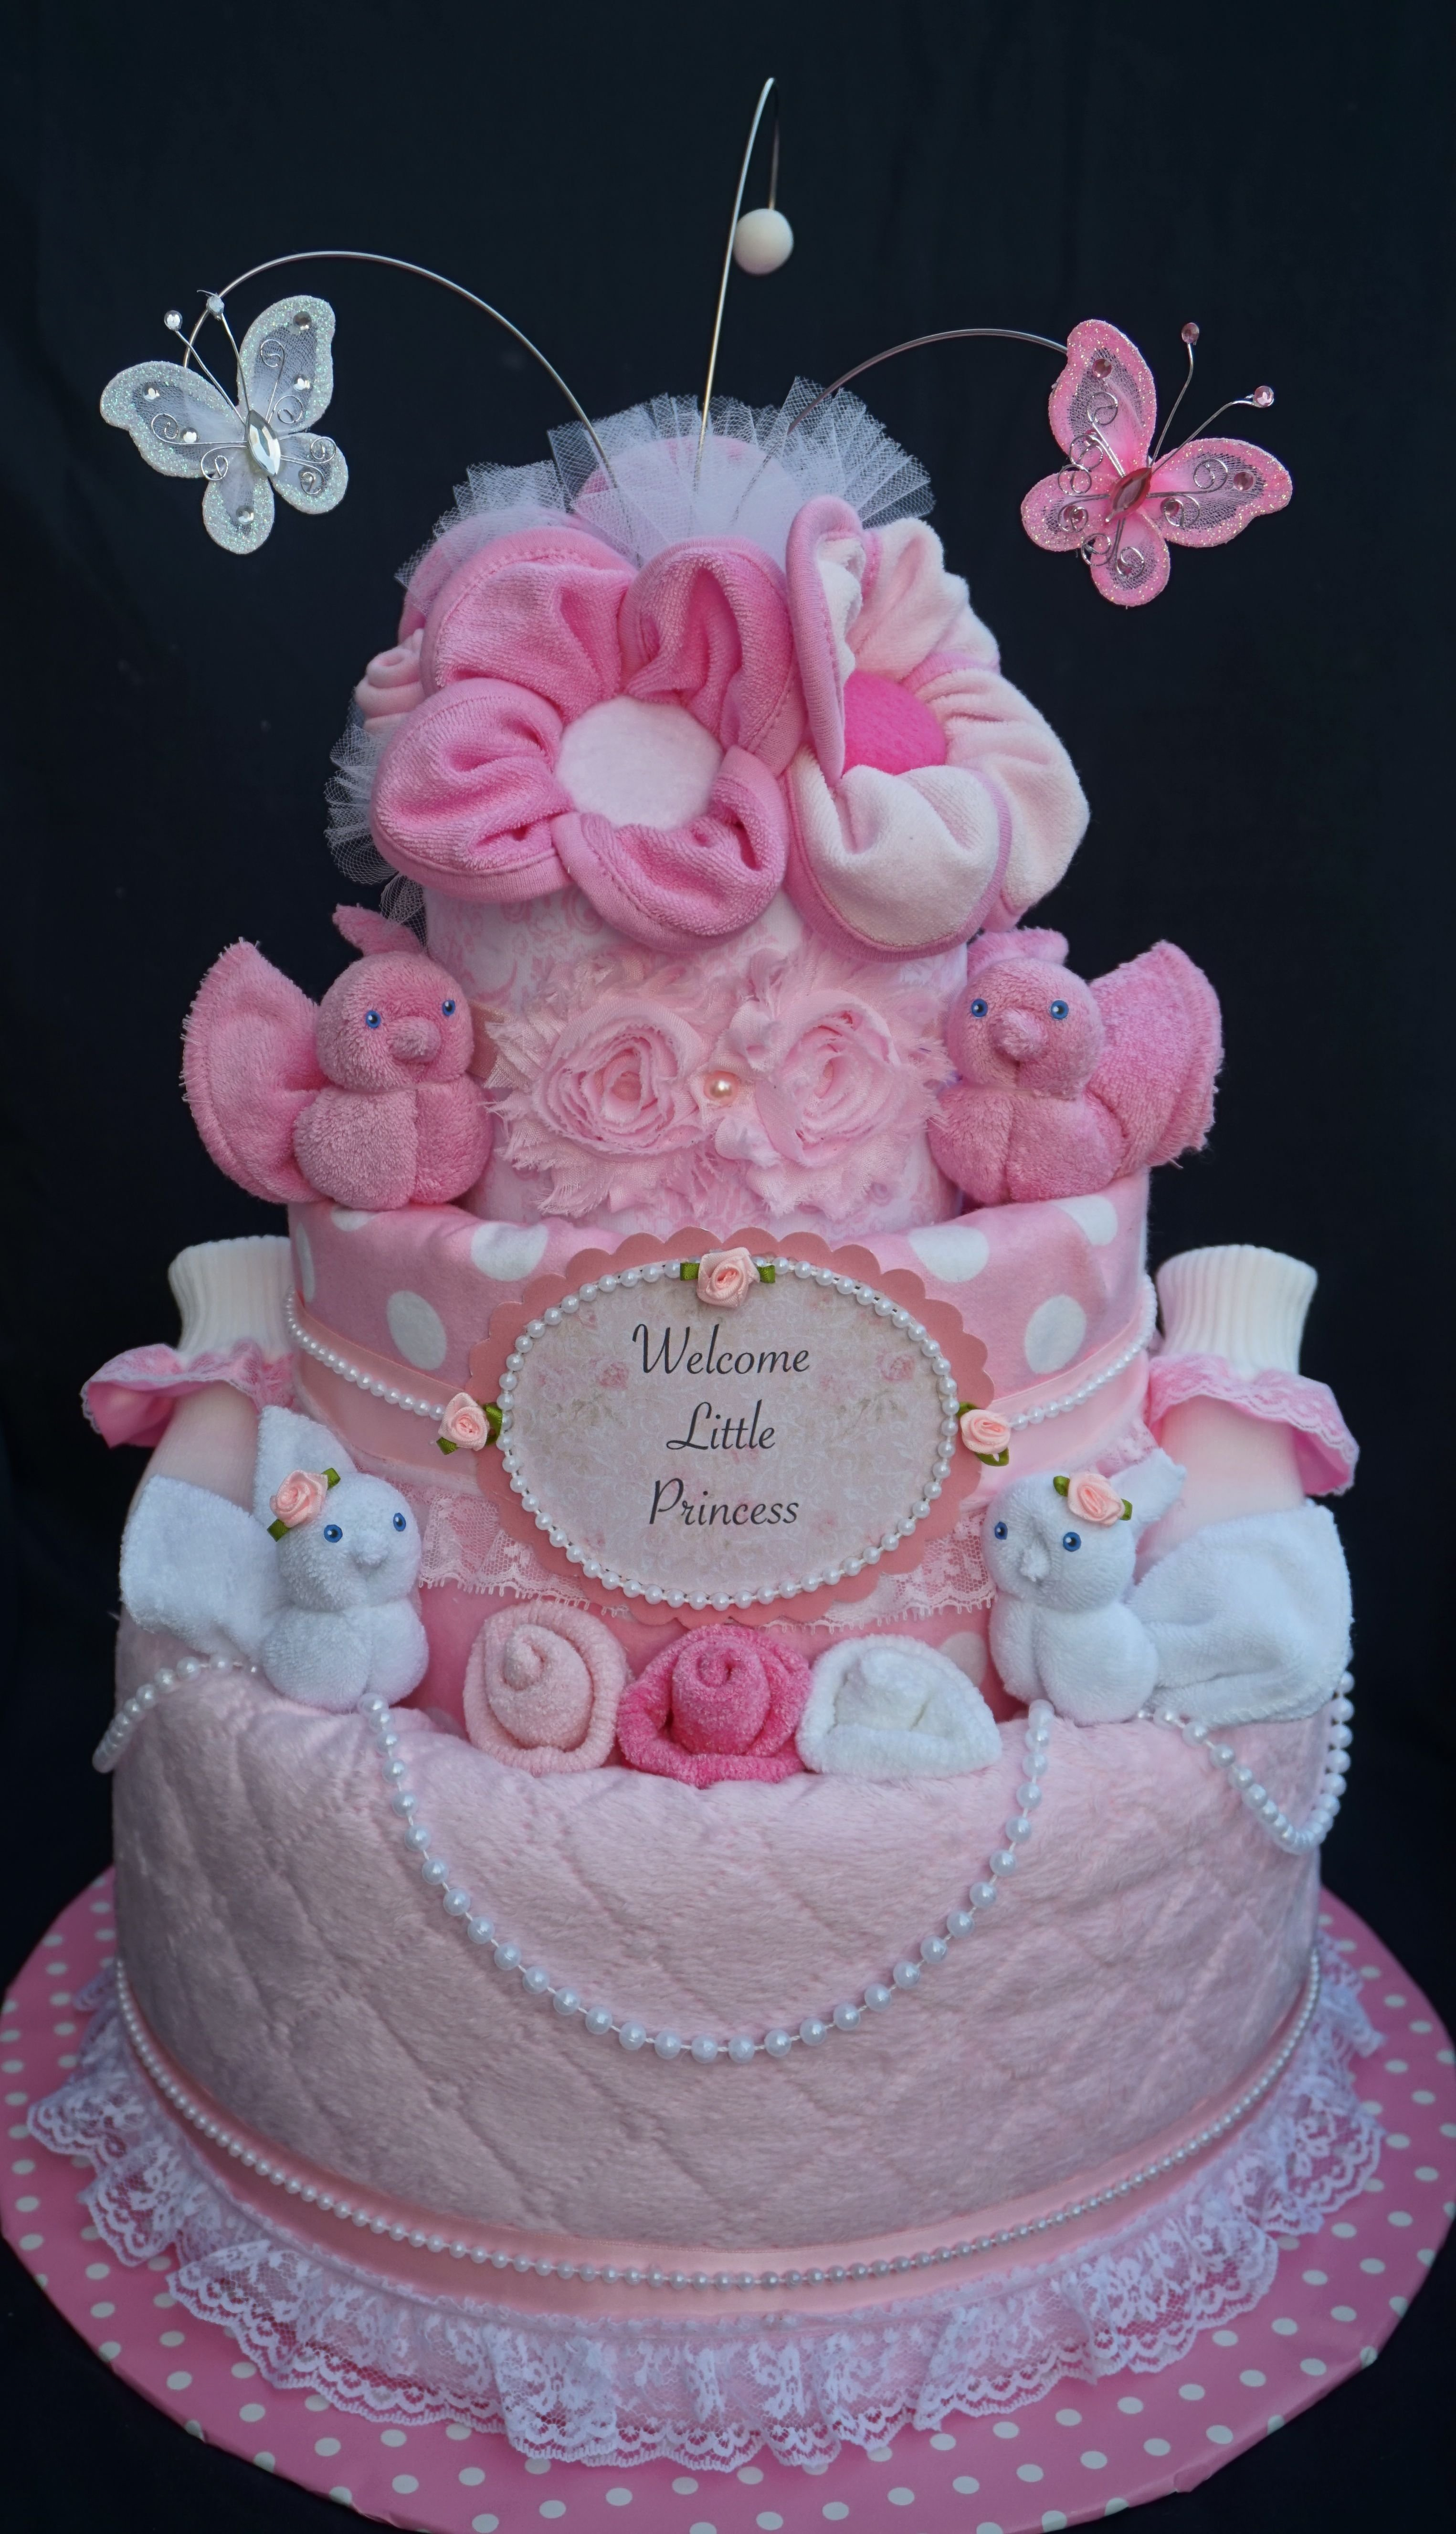 10 Awesome Diaper Cake Ideas For A Girl sweet baby girl diaper cake www facebook diapercakesbydiana 2 2020